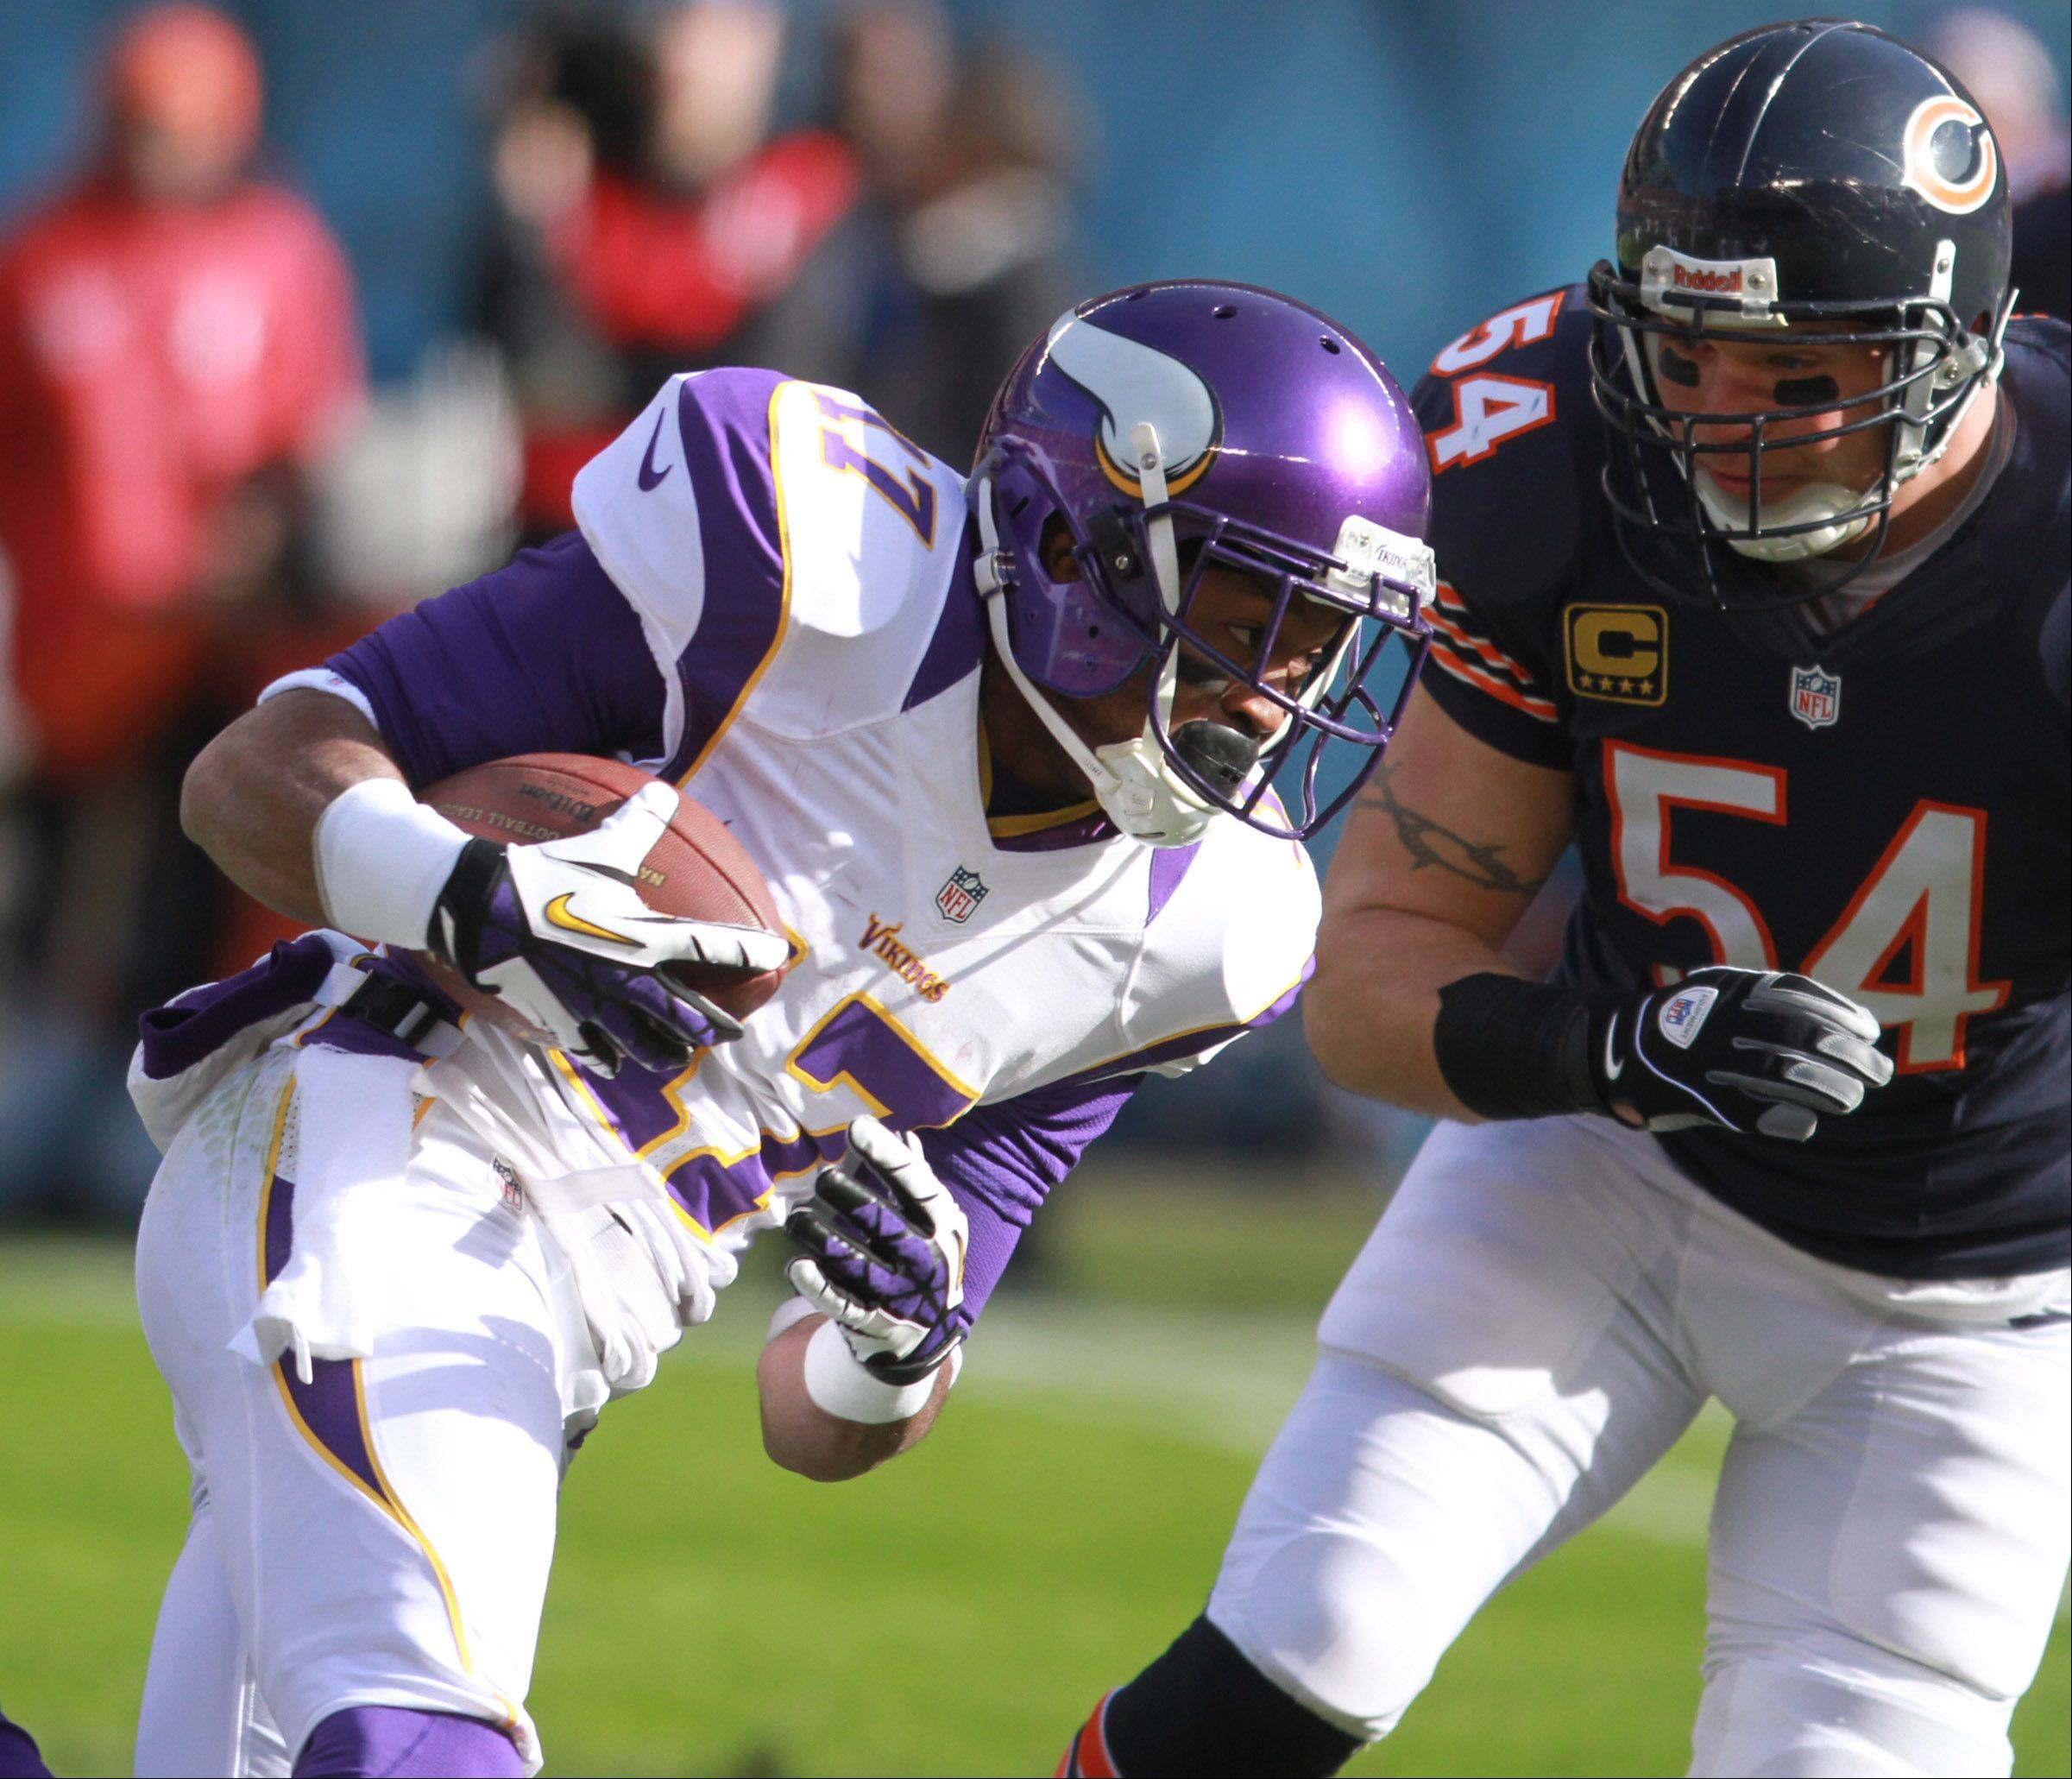 Vikings wide receiver Jarius Wright turns the corner against Bears middle linebacker Brian Urlacher at Soldier Field Sunday.